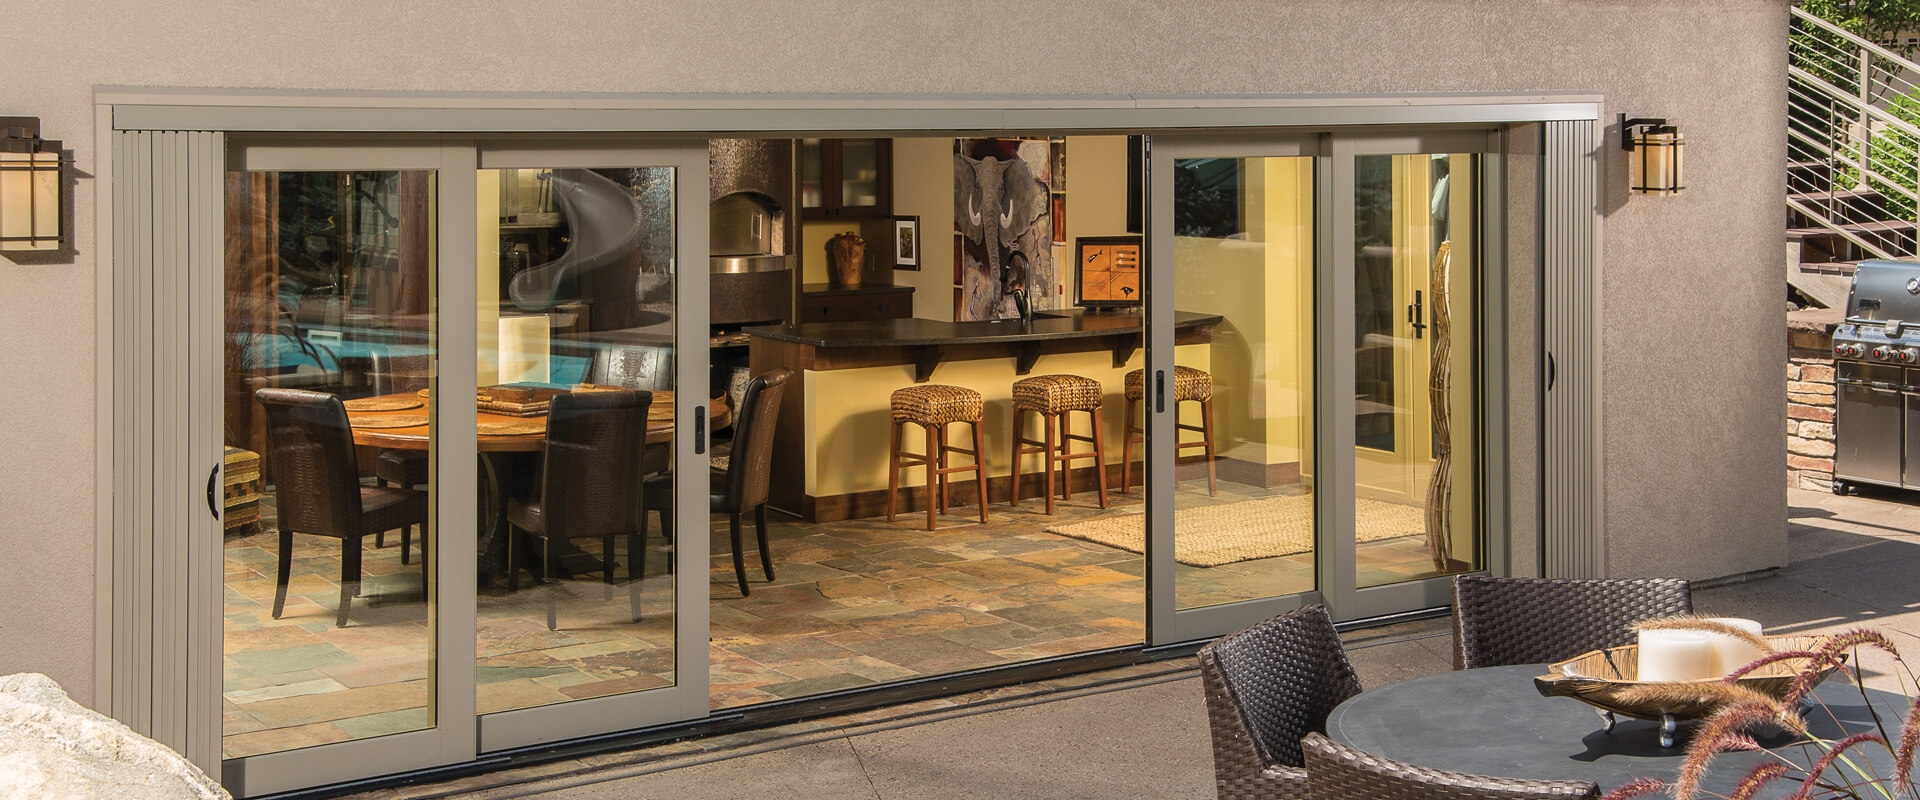 hero UltraTS U510 tiny - What Are Lift and Slide Doors? And What Benefits Do You Gain with Them?